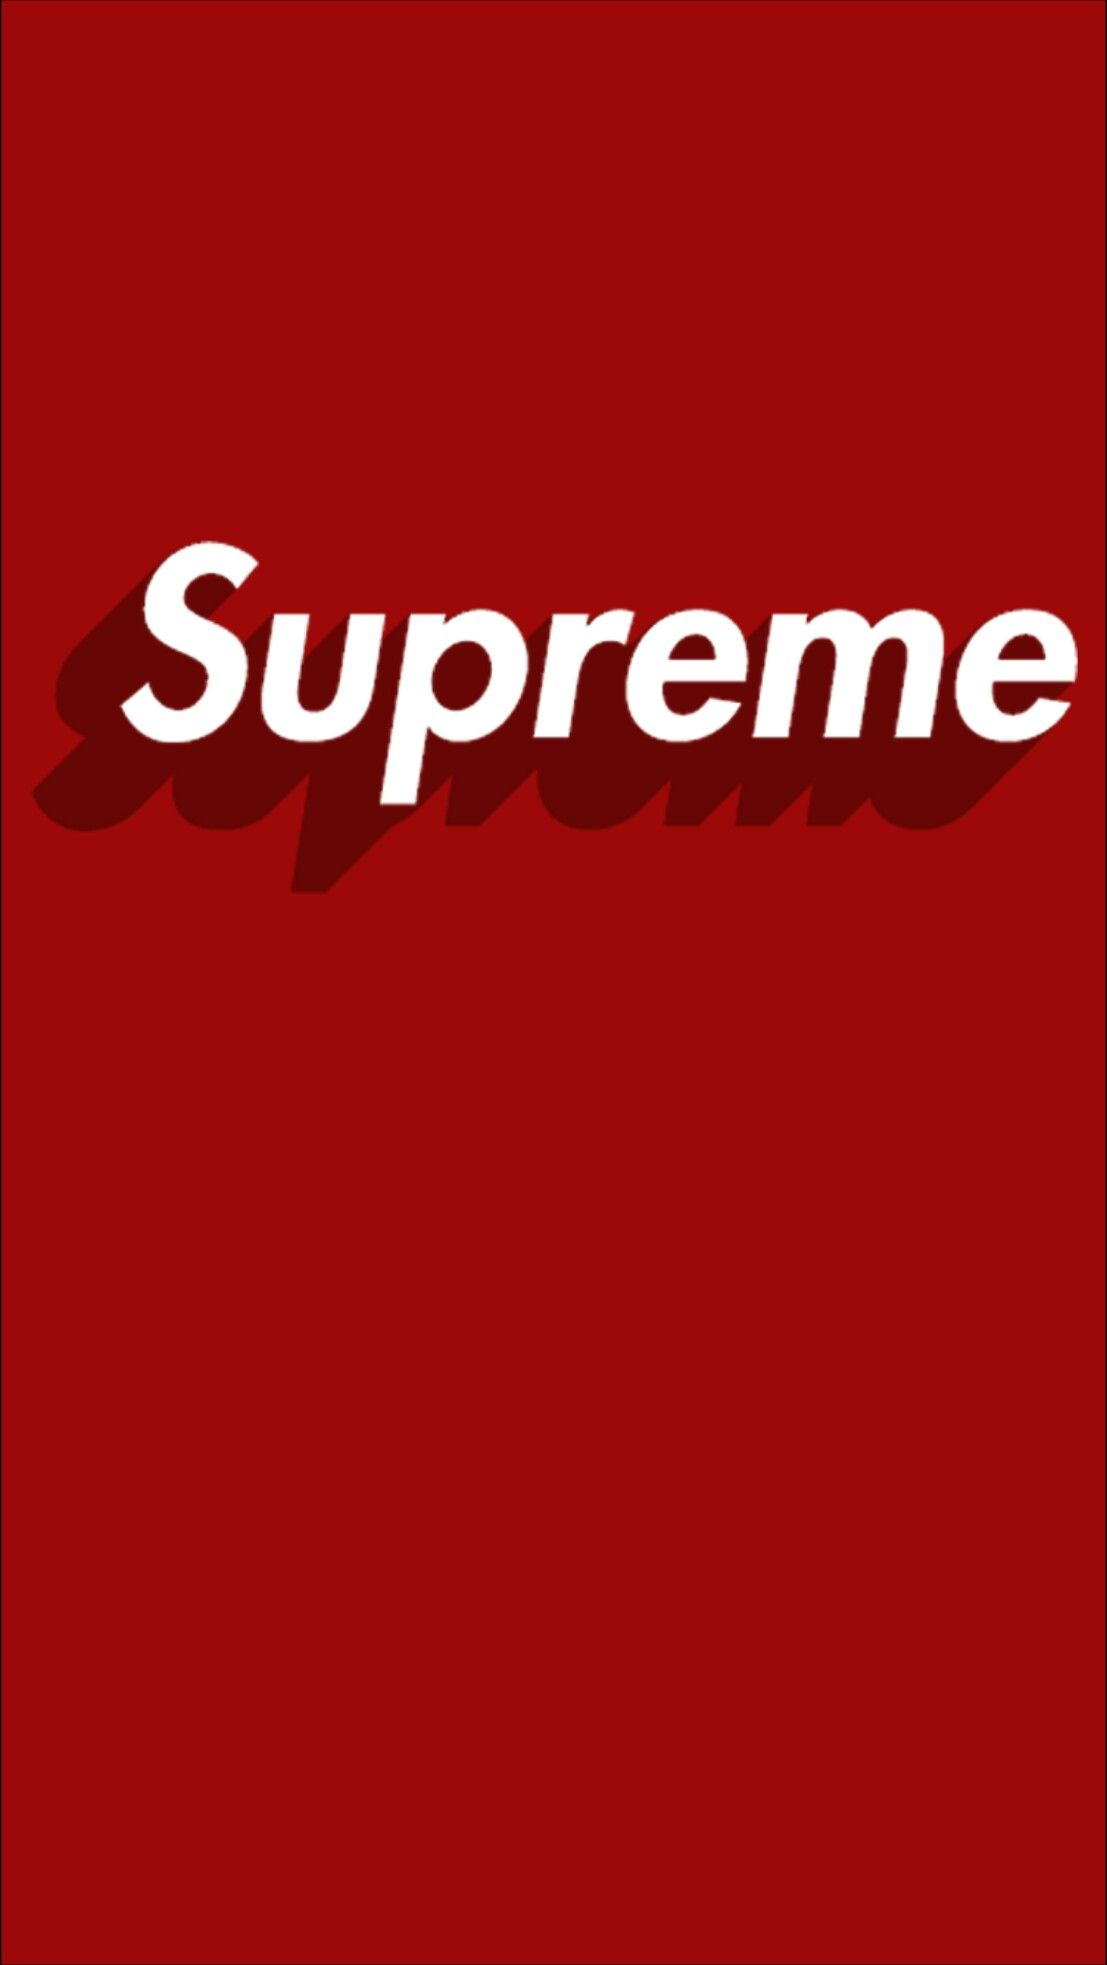 Download Supreme Floral Wallpaper Desktop Is Cool Wallpapers